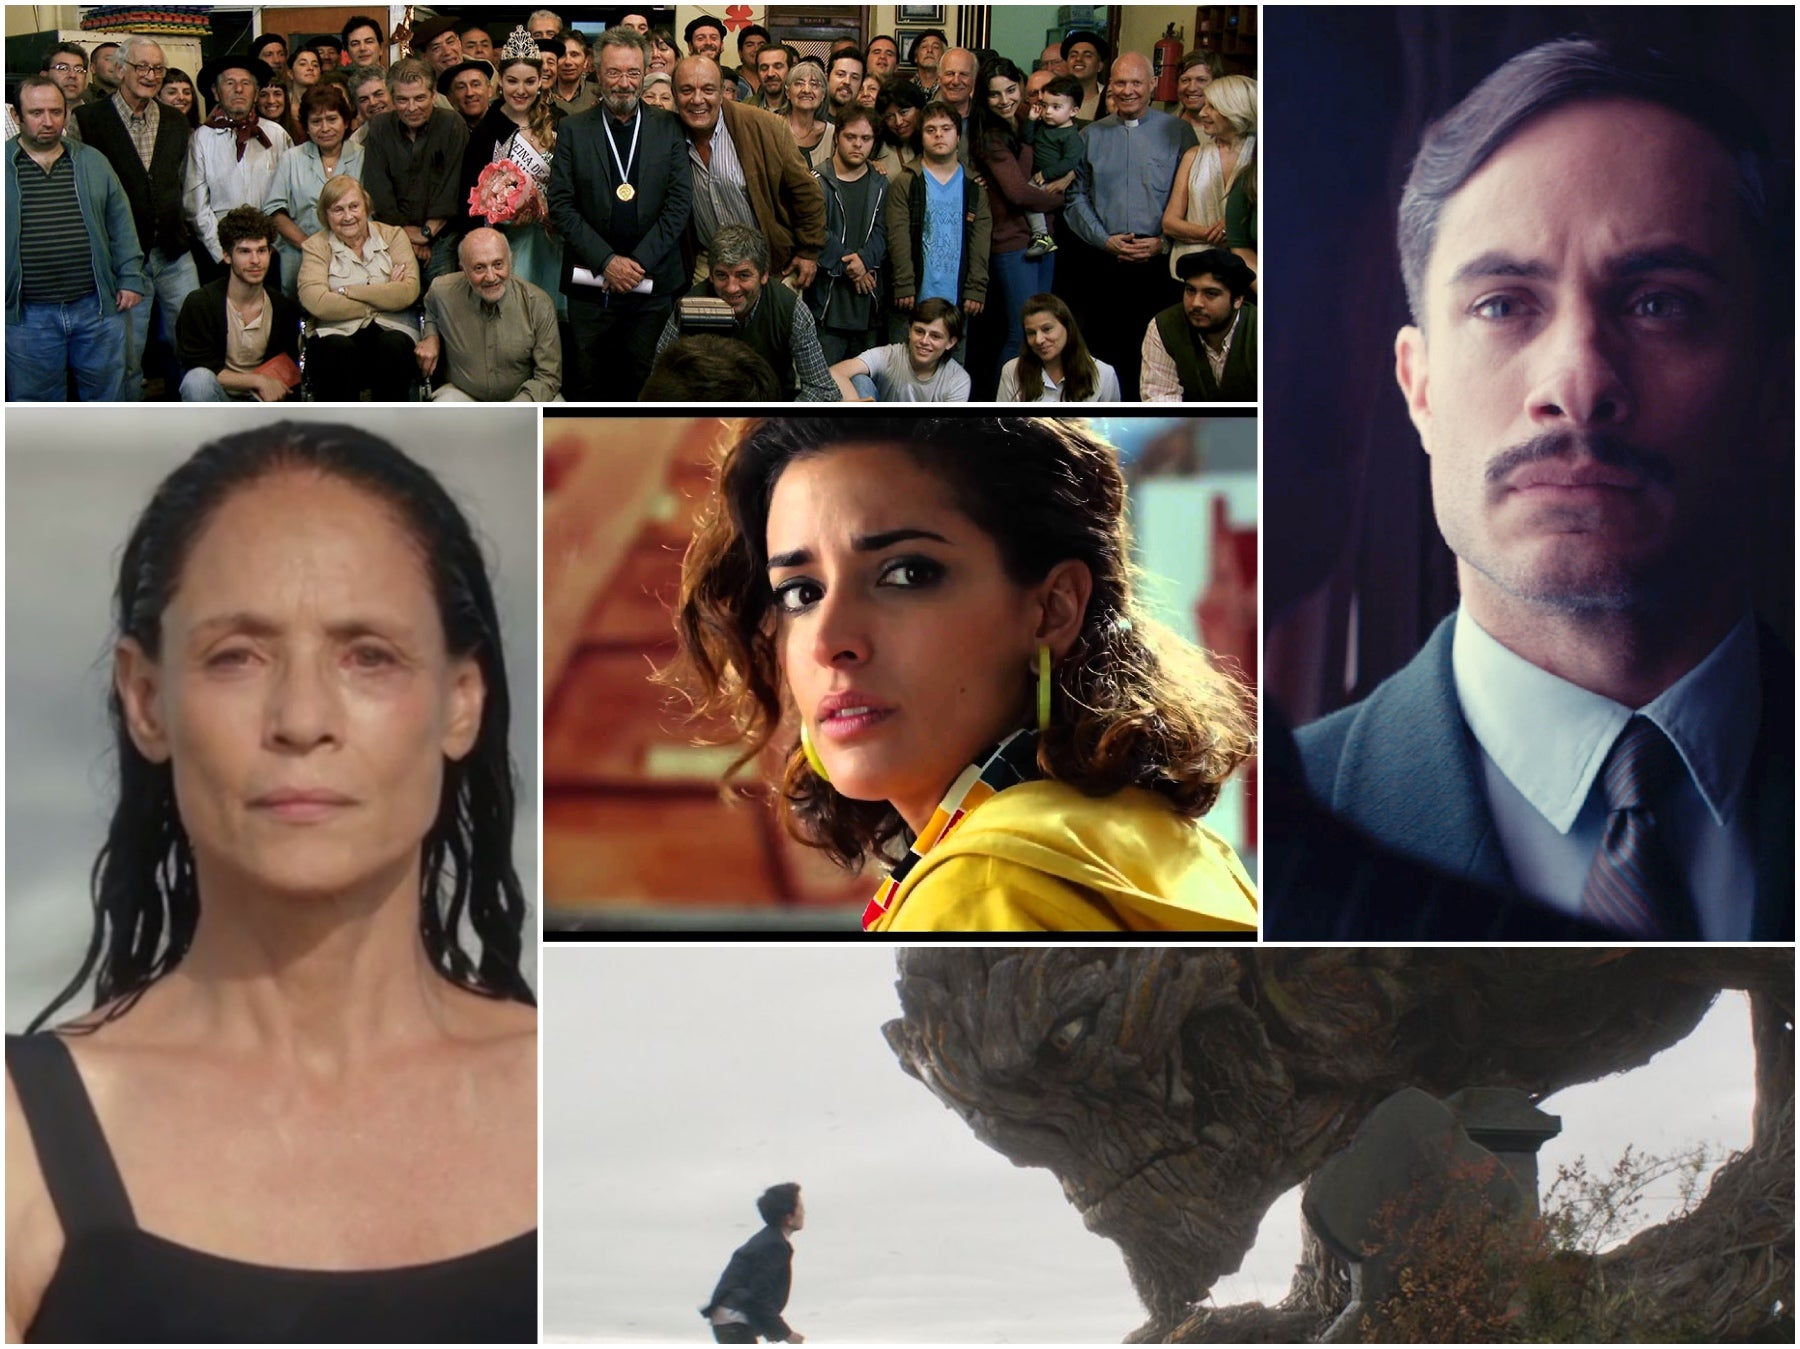 Scenes from A Monster Calls, Aquarius, Julieta, Neruda, El ciudadano ilustre